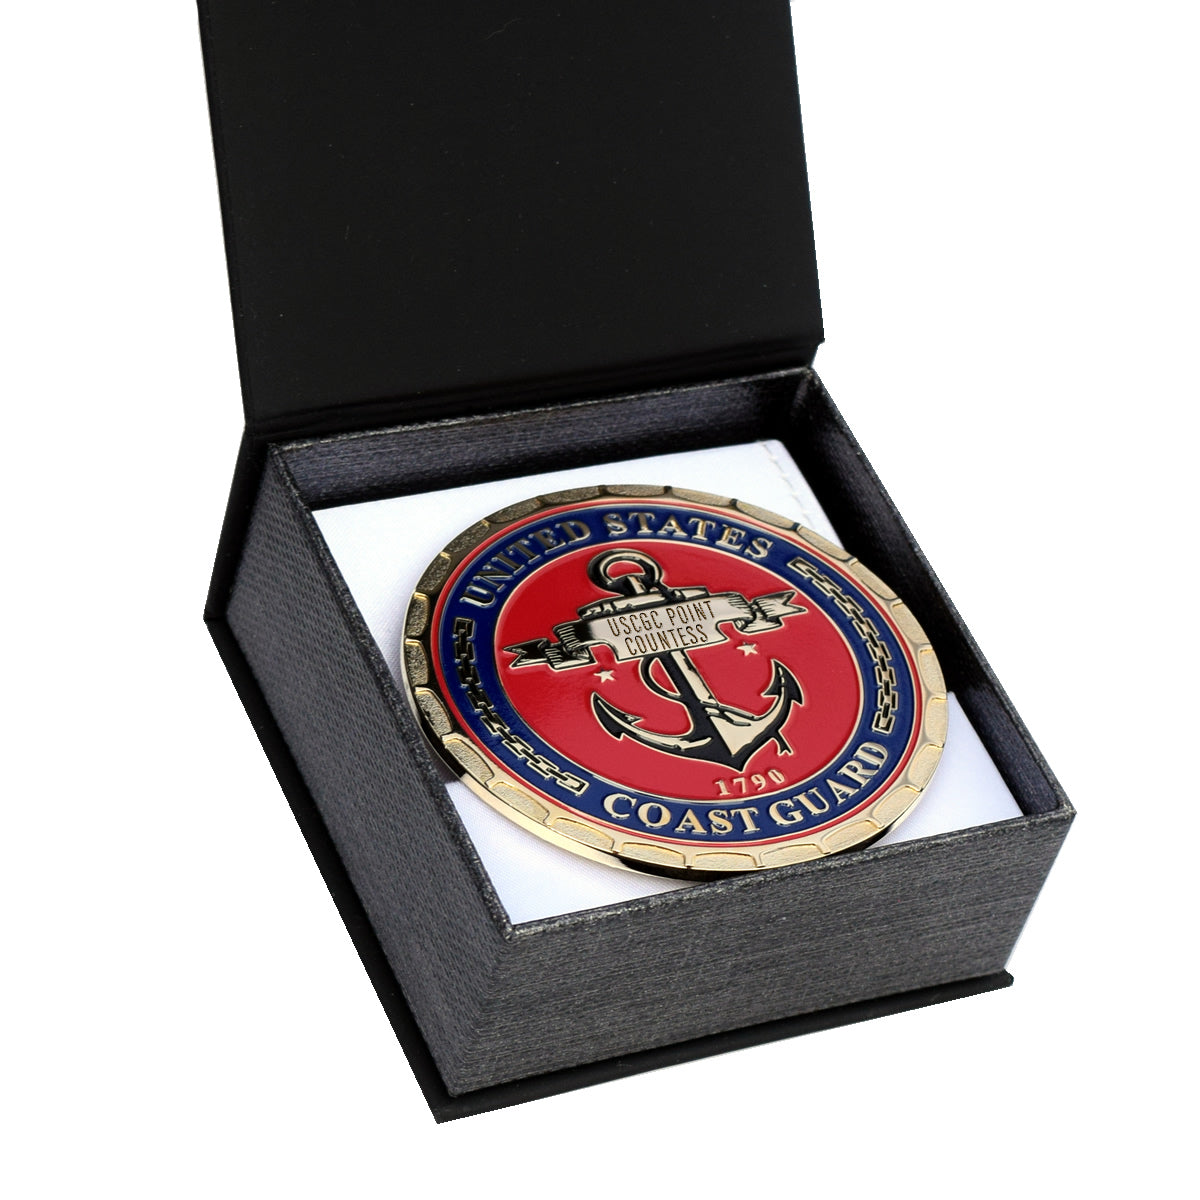 USCGC POINT COUNTESS WPB-82335 COAST GUARD PLAQUE